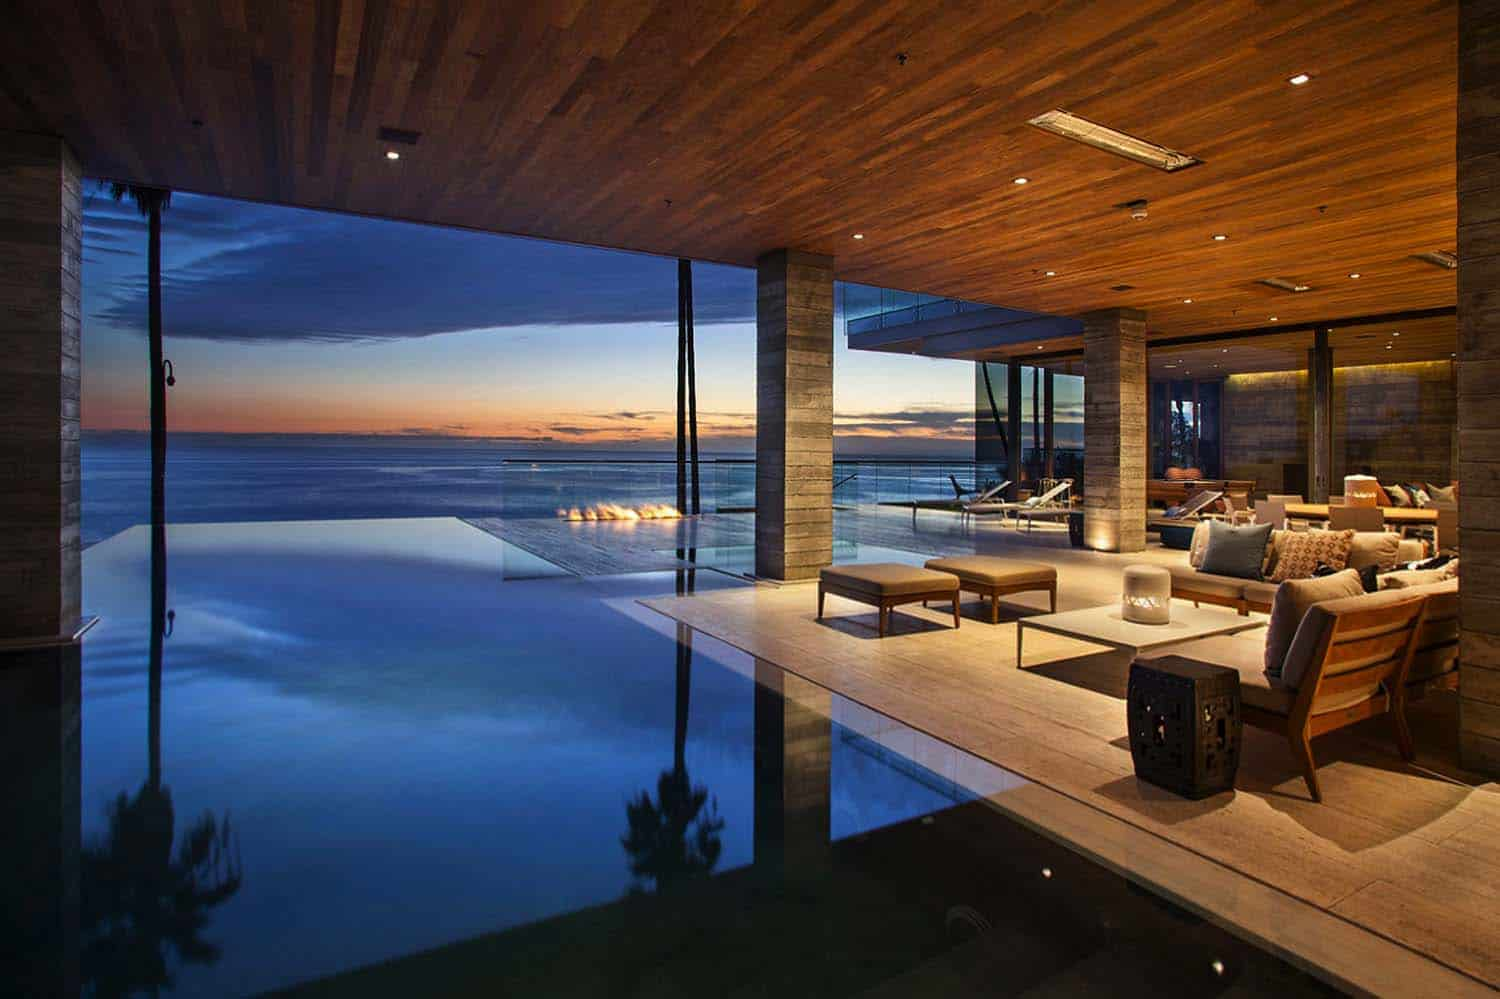 Floorplan Of A House Minimalist Beach House Perched On A Cliff In Laguna Beach